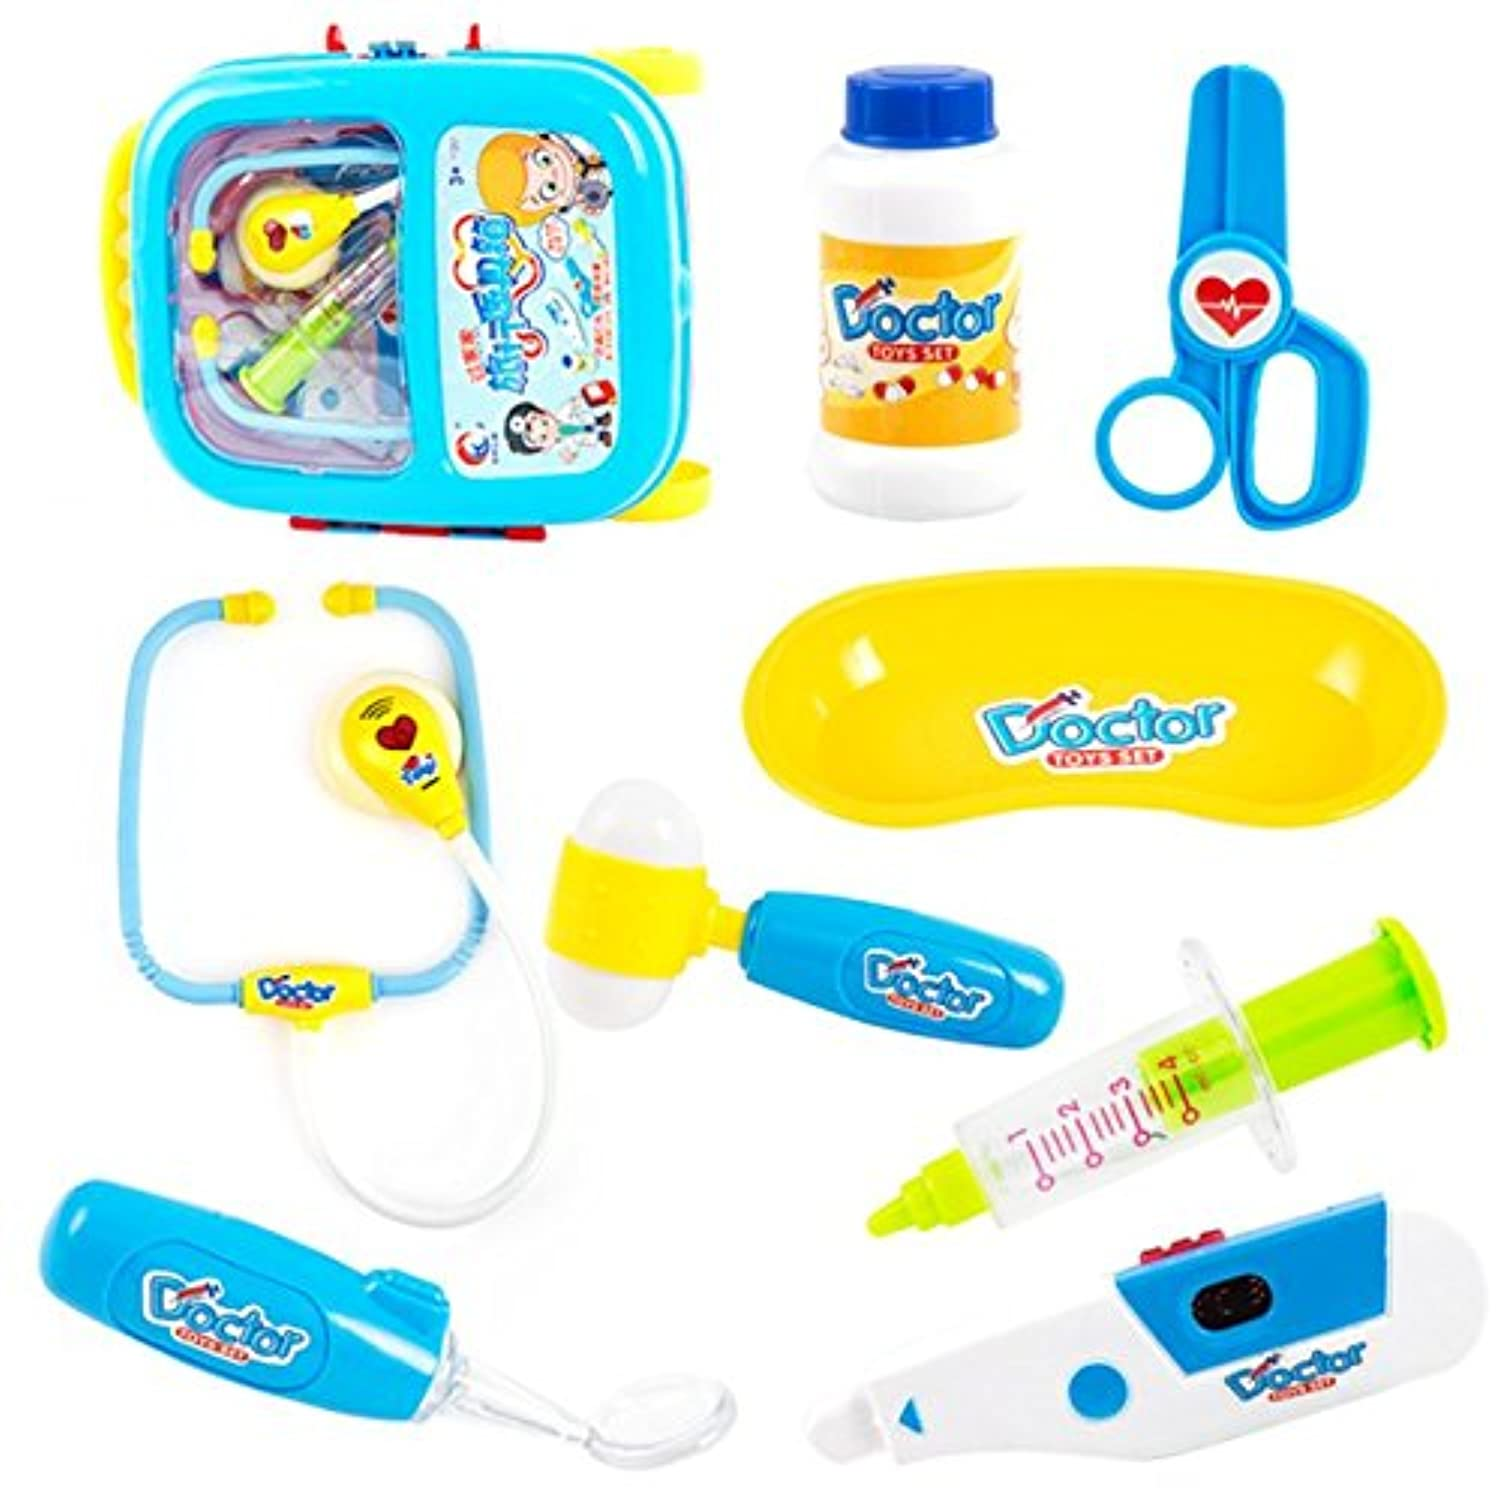 Pretend & Role Play Doctor Medical Kitおもちゃwith aトロリーケースfor Kids@@8pcsブルー@